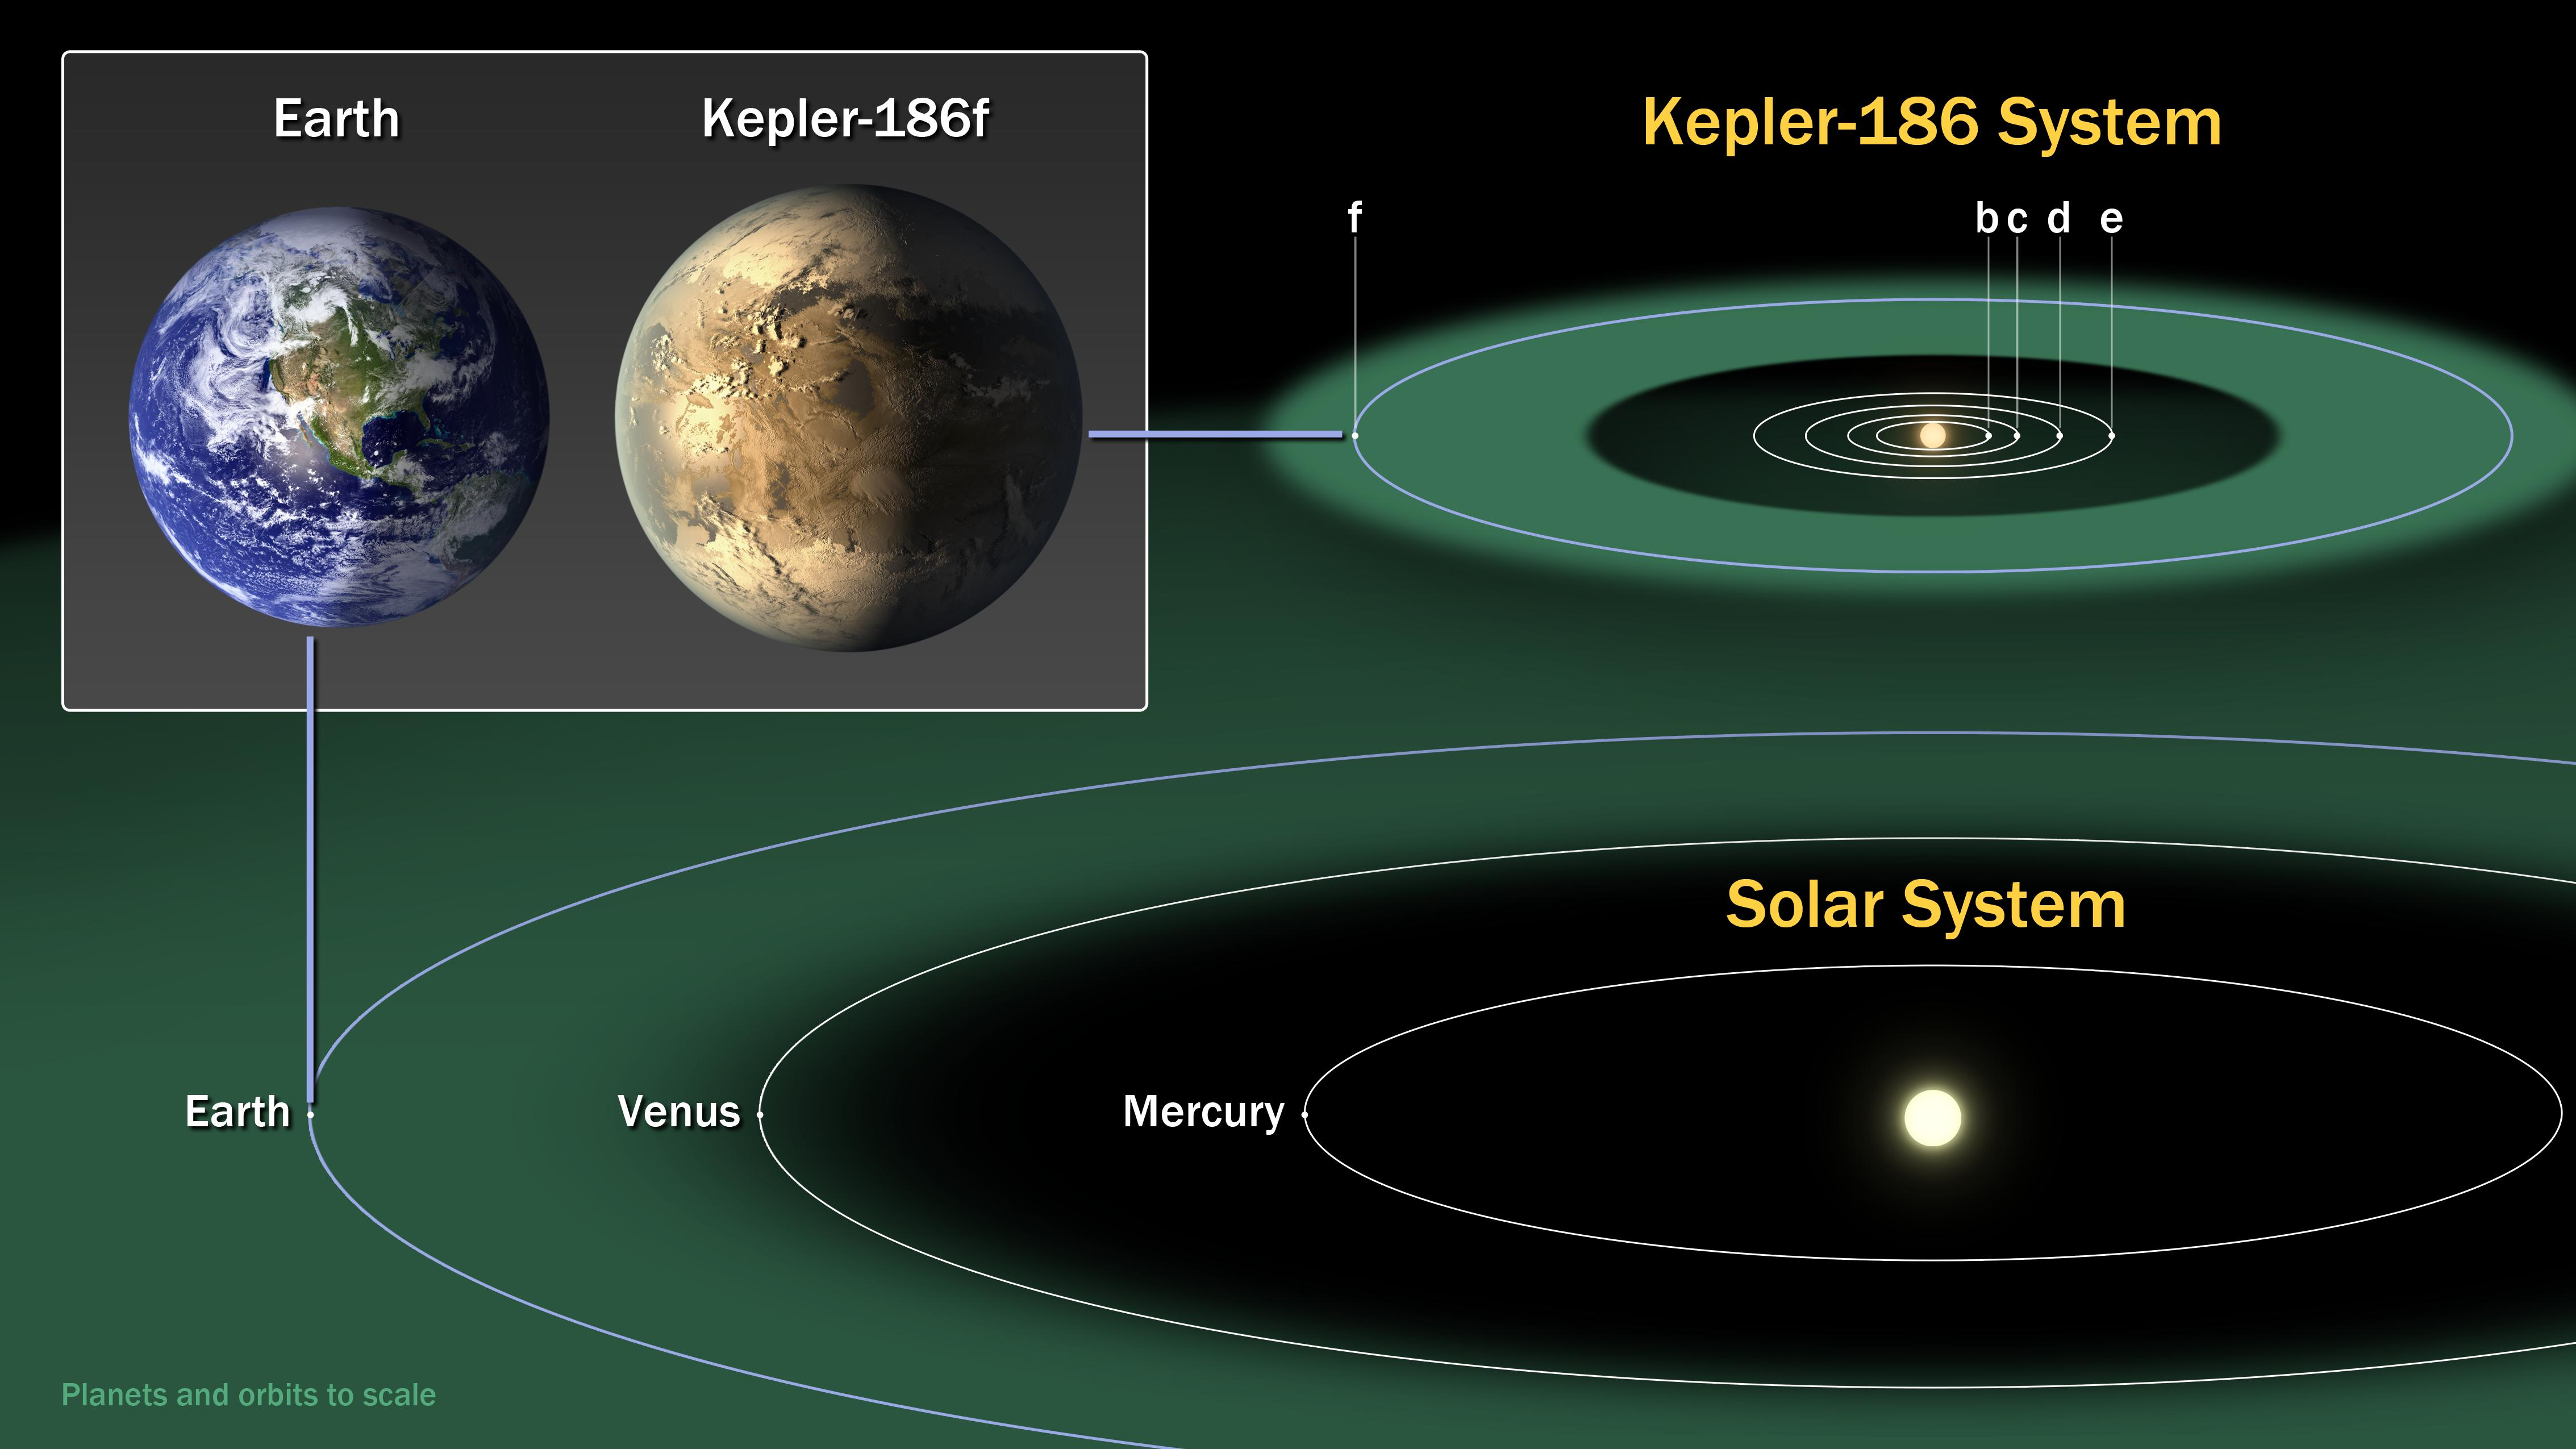 This diagram compares the planets of our inner solar system to Kepler-186, a five-planet star system about 500 light-years from Earth in the constellation Cygnus. The Kepler-186 system is home to Kepler-186f, the first validated Earth-size planet orbiting a distant star in the habitable zone-a range of distance from a star where liquid water might pool on the planet's surface.  Image: NASA/Ames/SETI Institute/JPL-Caltech